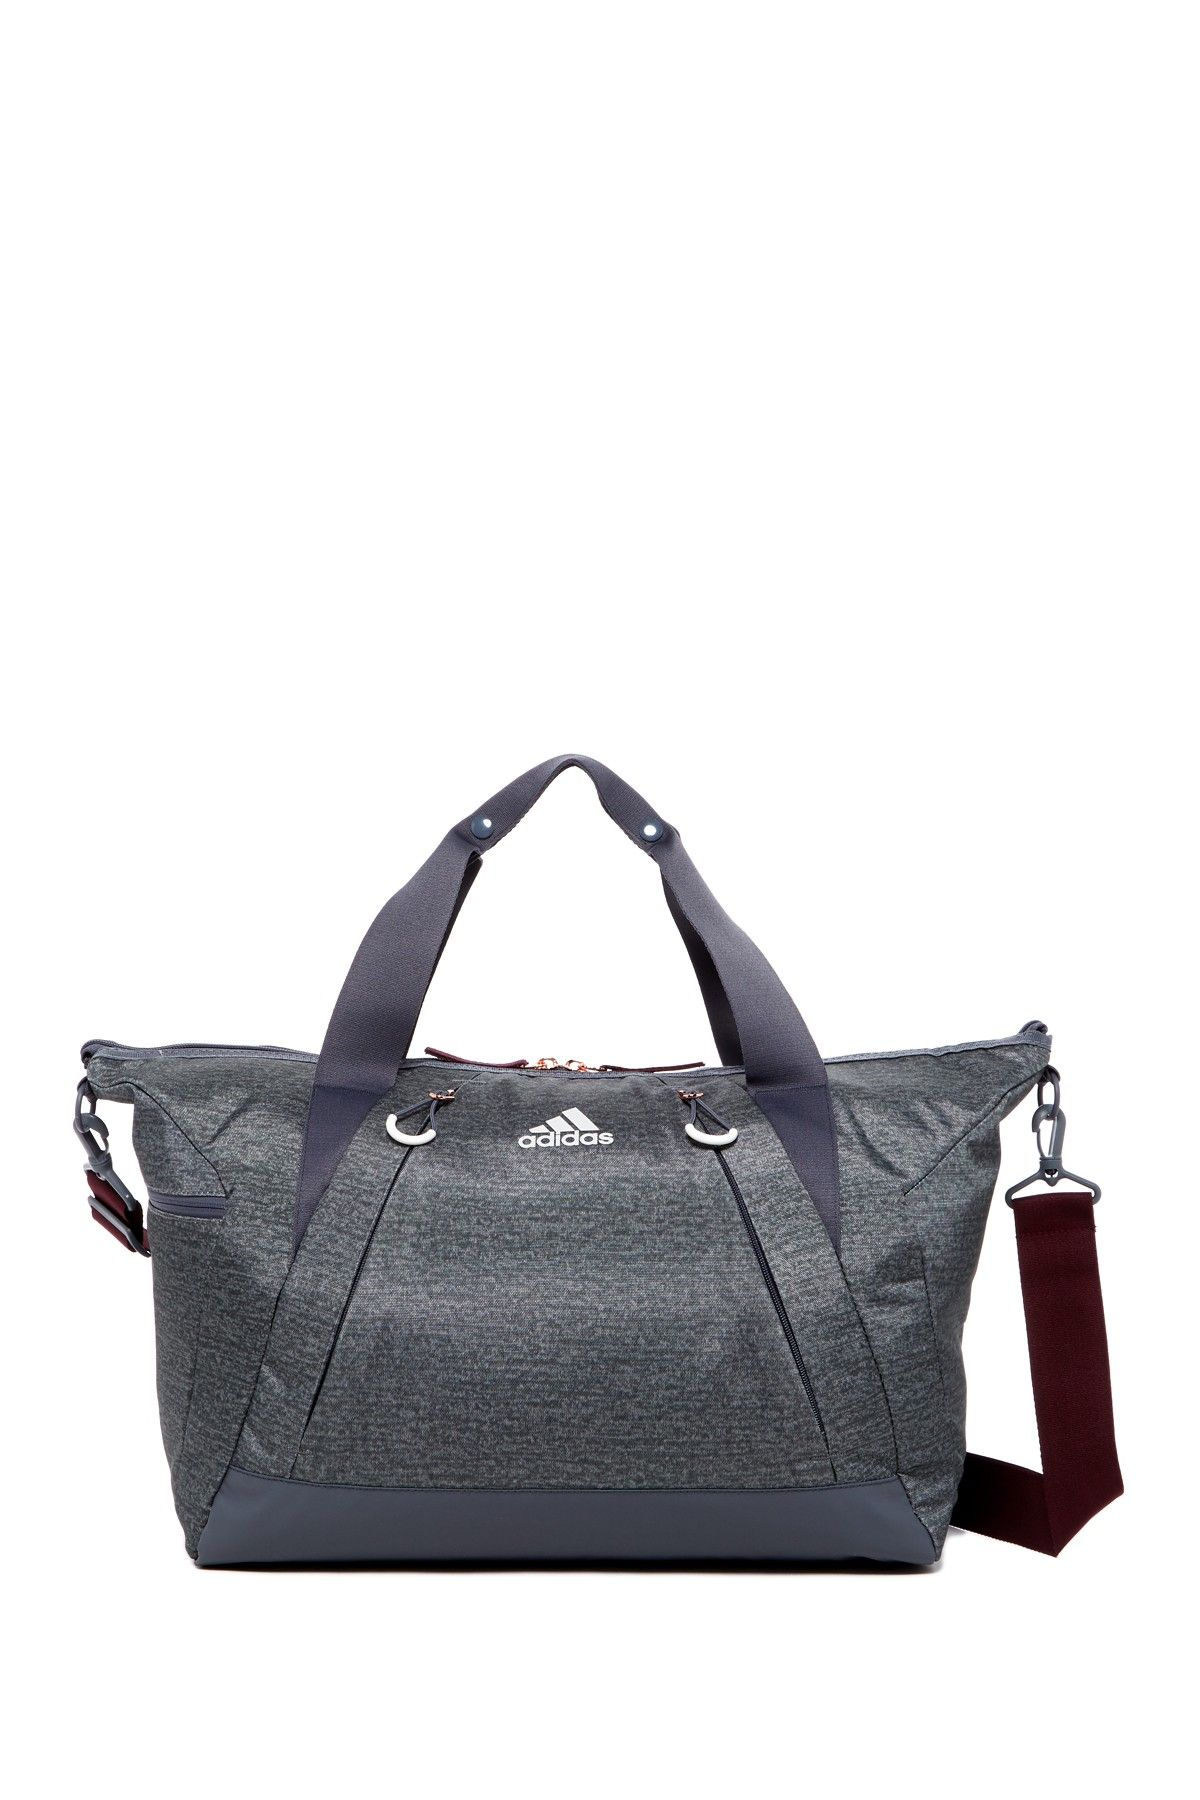 6962e9aced Studio II Duffel Bag by adidas on  nordstrom rack